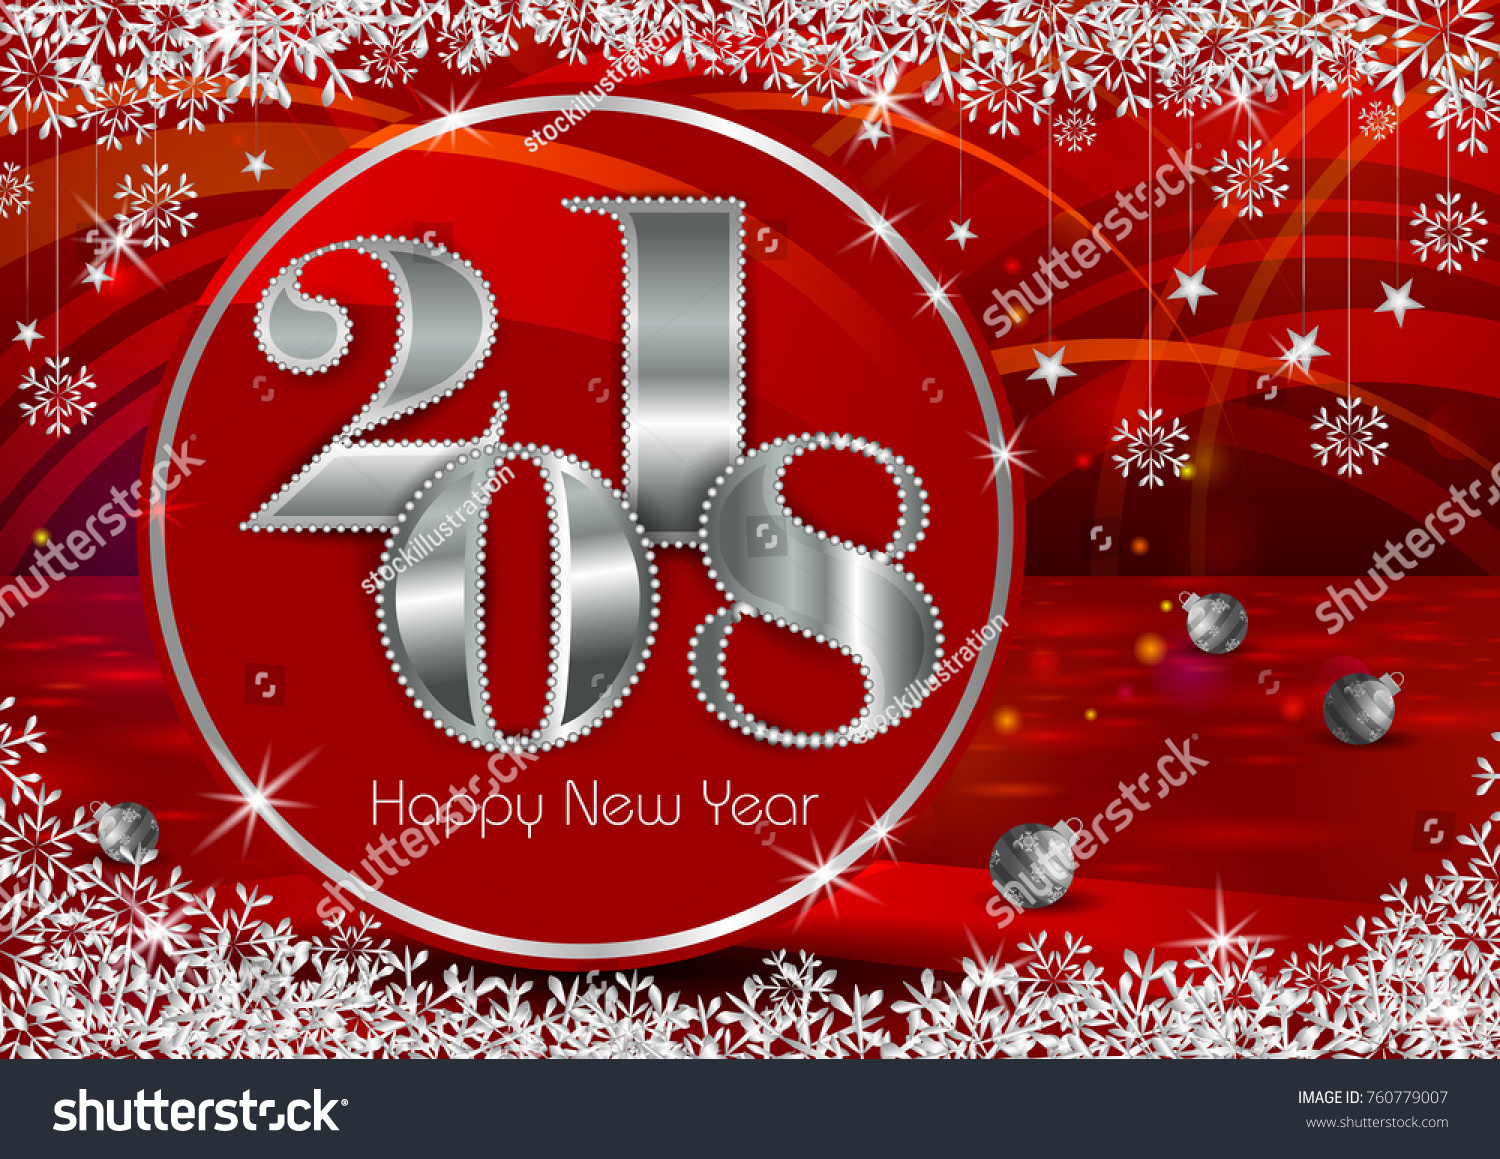 Happy new year 2018 wishes greeting stock vector royalty free happy new year 2018 wishes greeting card template background design in vector m4hsunfo